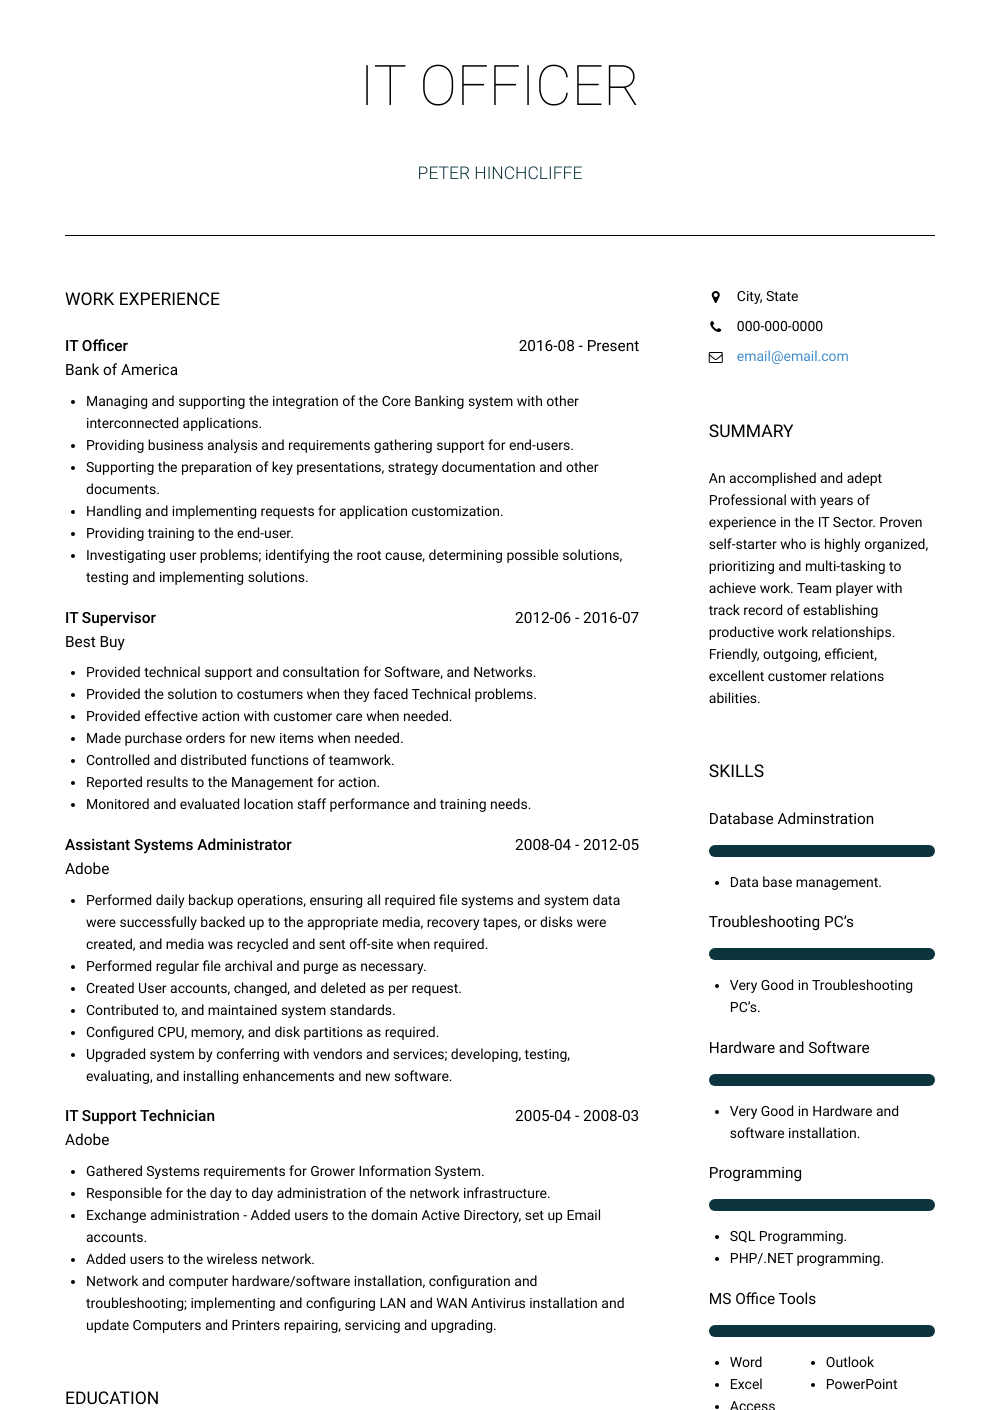 IT Officer Resume Sample and Template